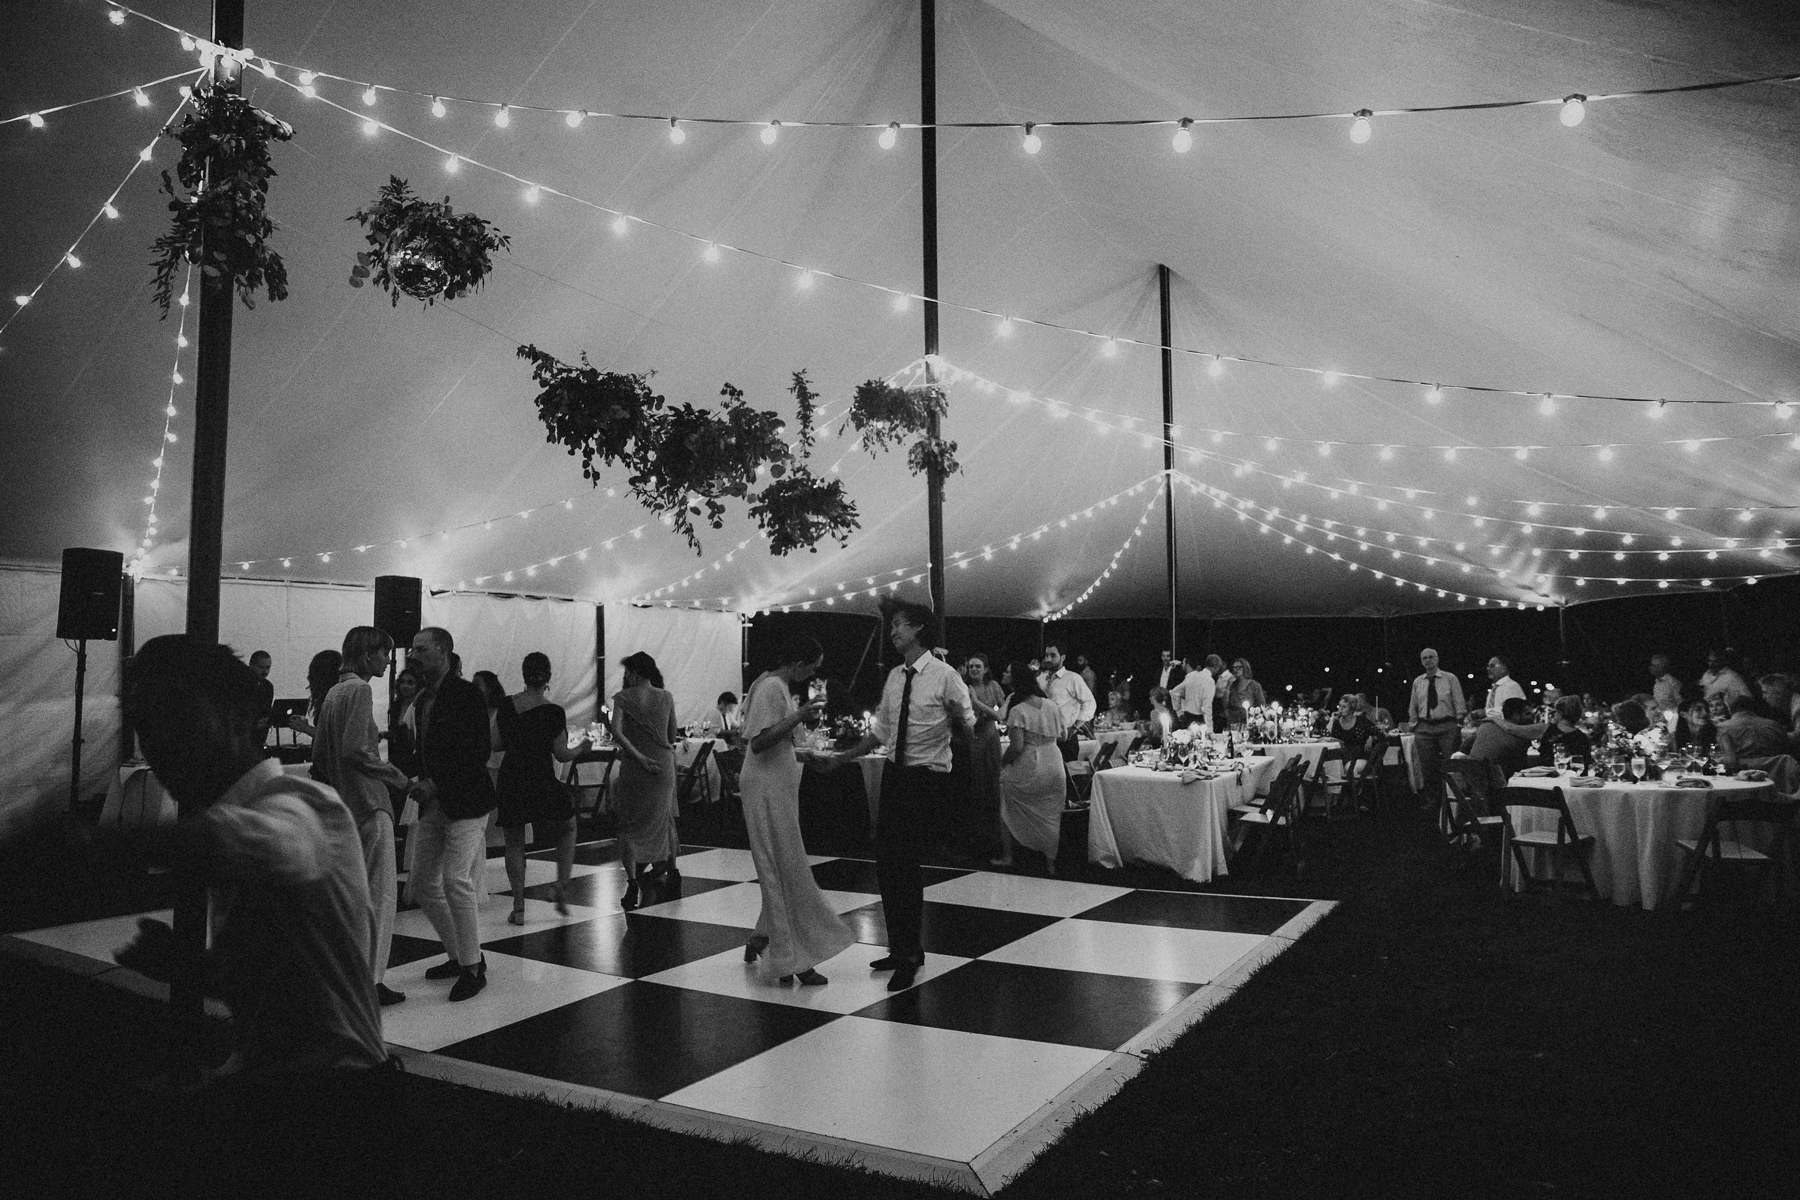 wedding dance floor with string lights and plants hanging above